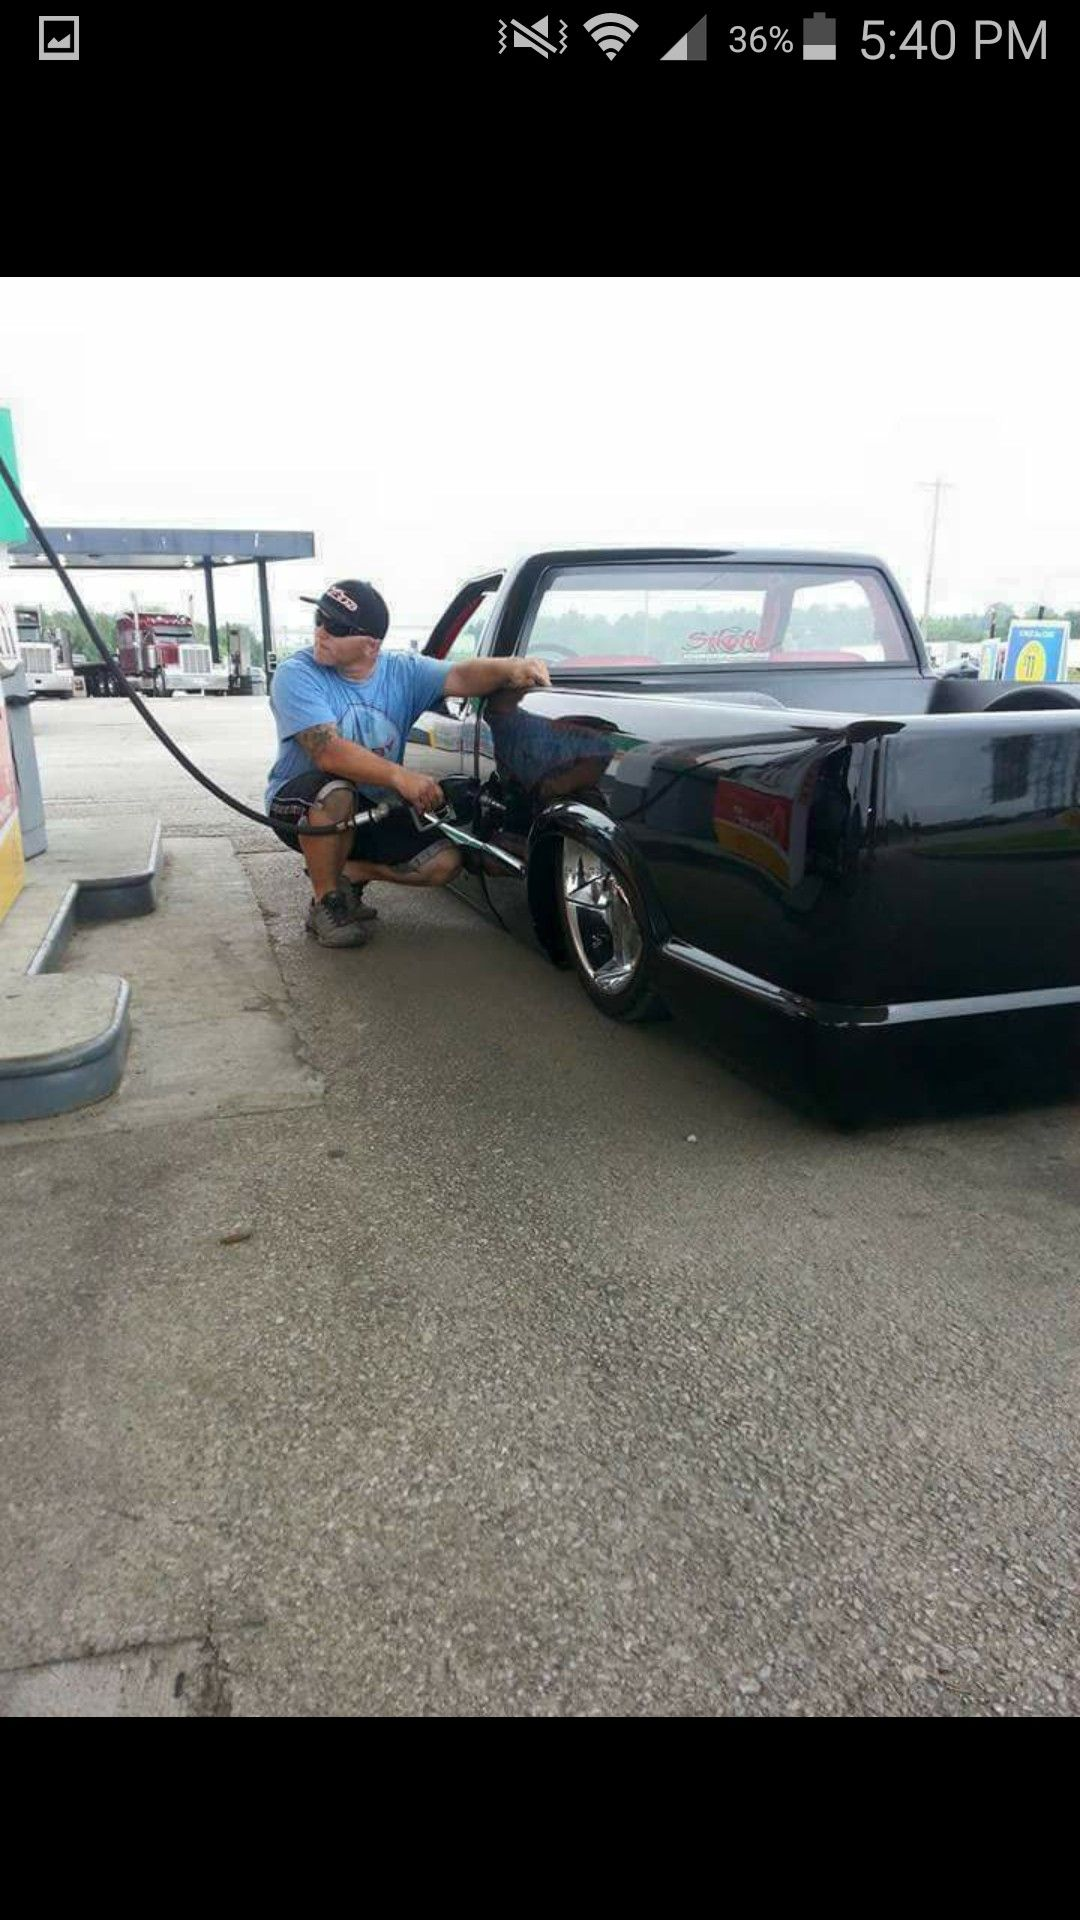 Mini Trucks S Slammed Chevy Motorcycles Motorbikes Biking Motors